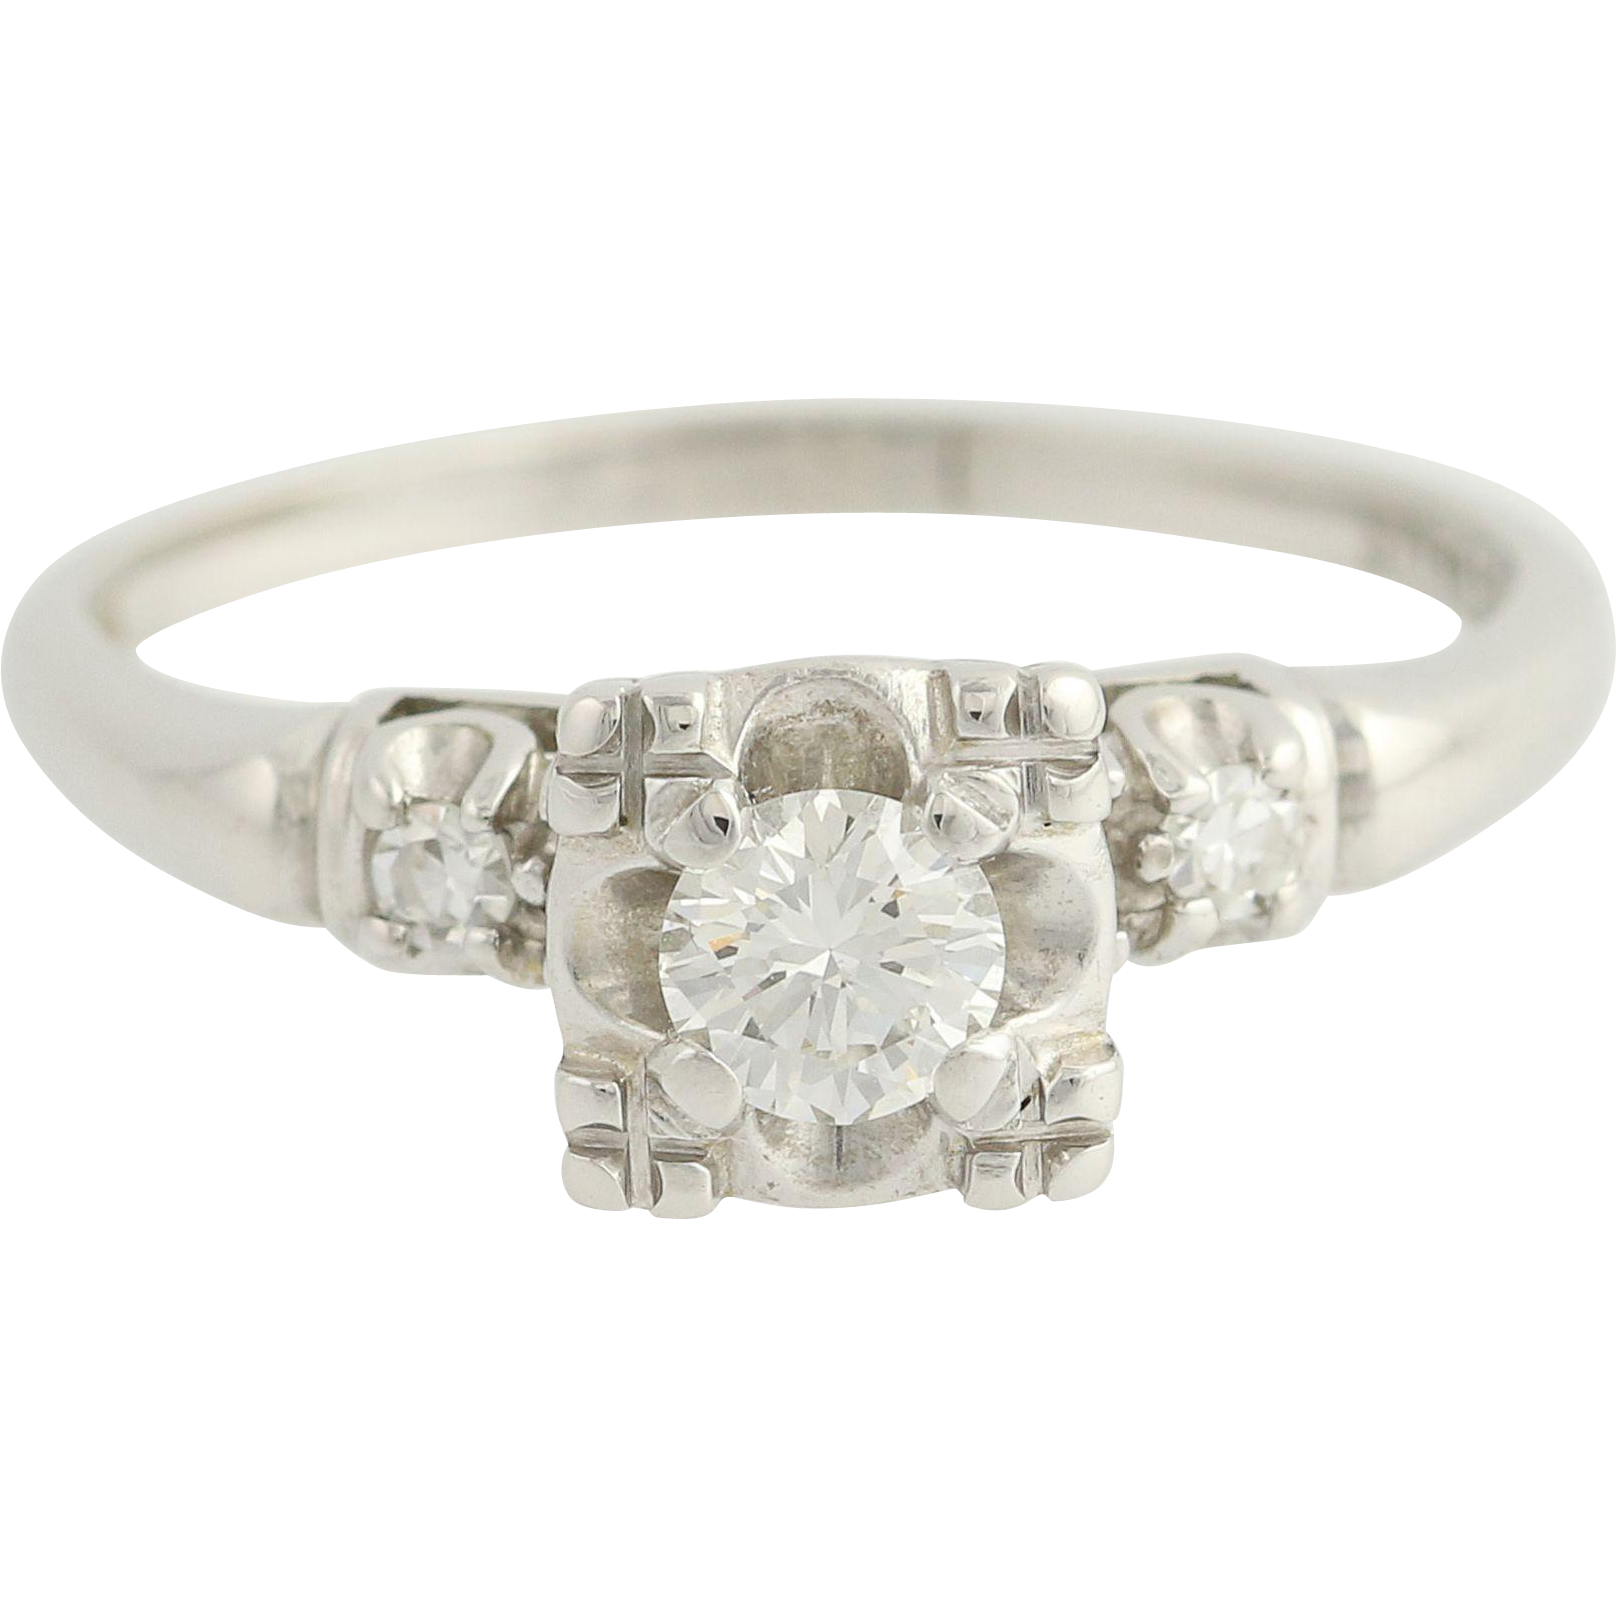 Vintage Engagement Ring - 14k White Gold 3-Stone Solitaire Accents Round 0.36ctw